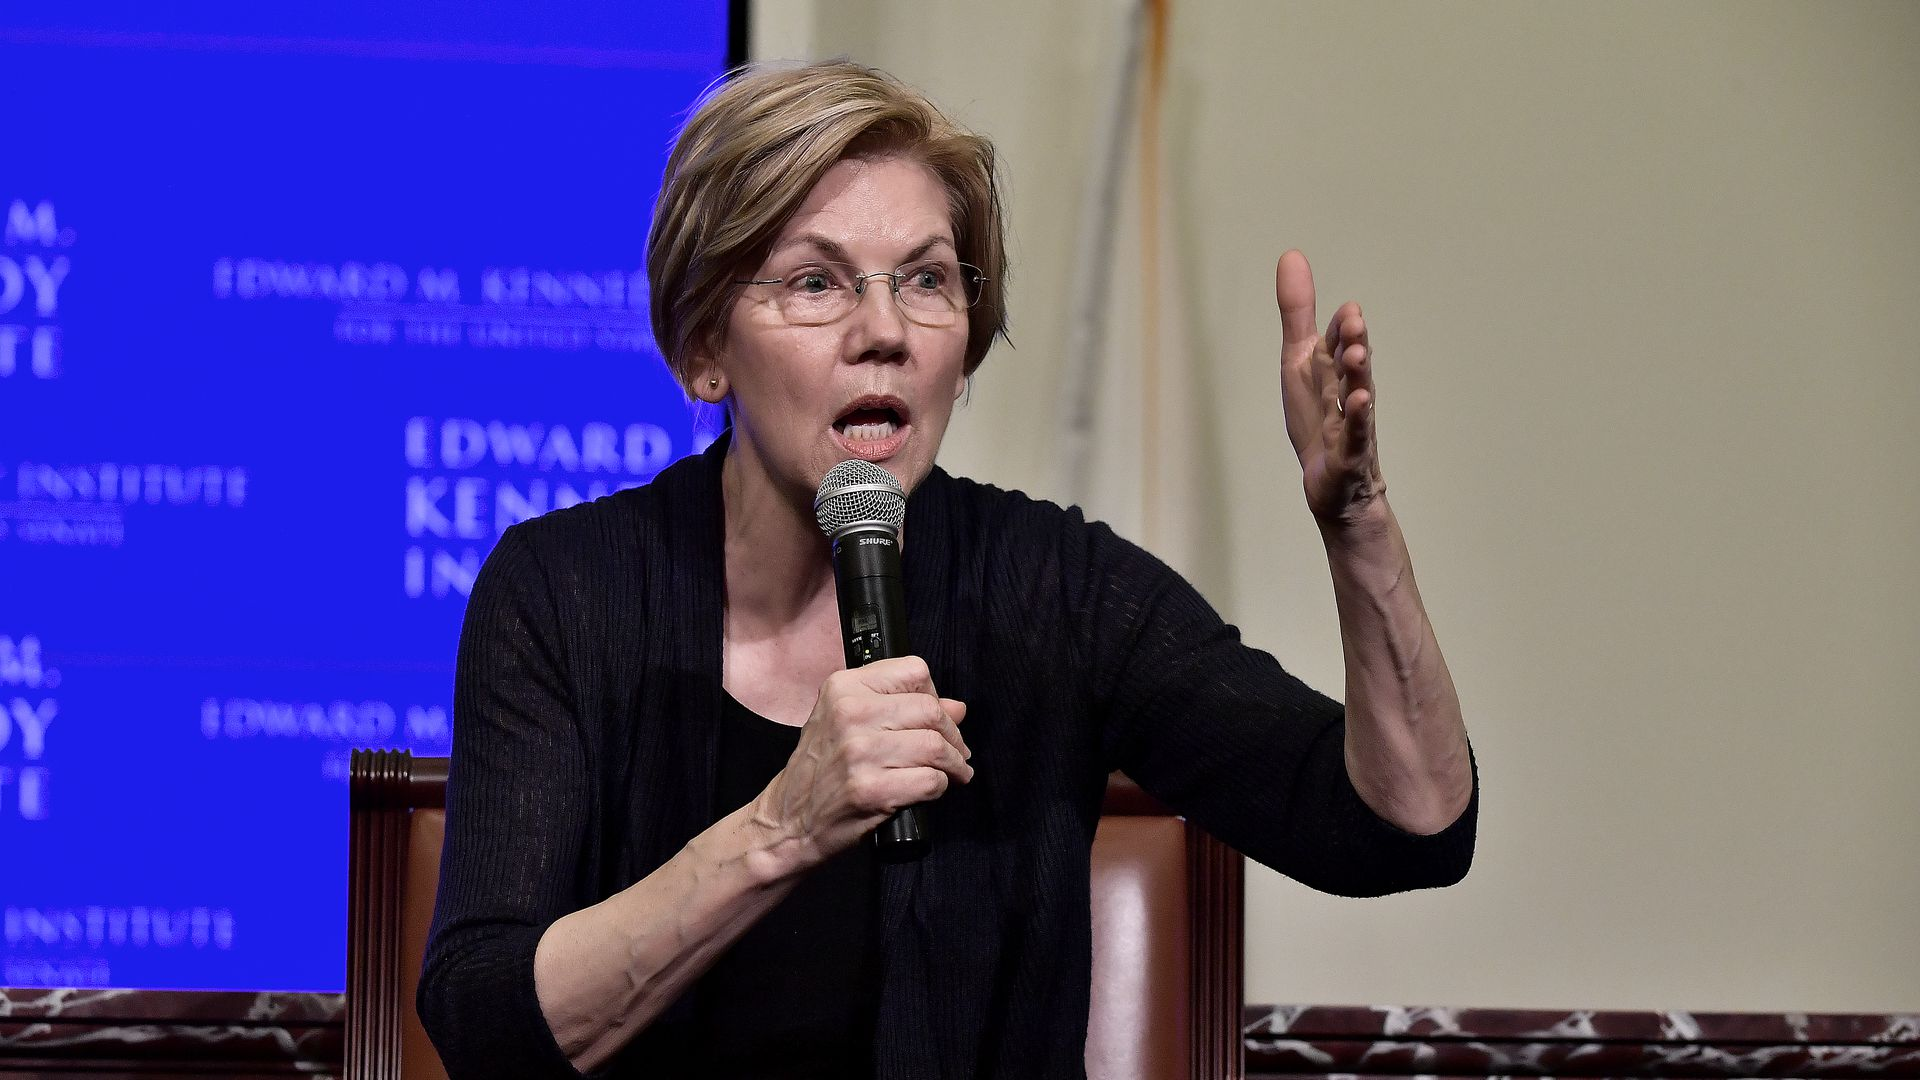 Senator Liz Warren gestures while holding a microphone, wearing black, before a blue and white background.